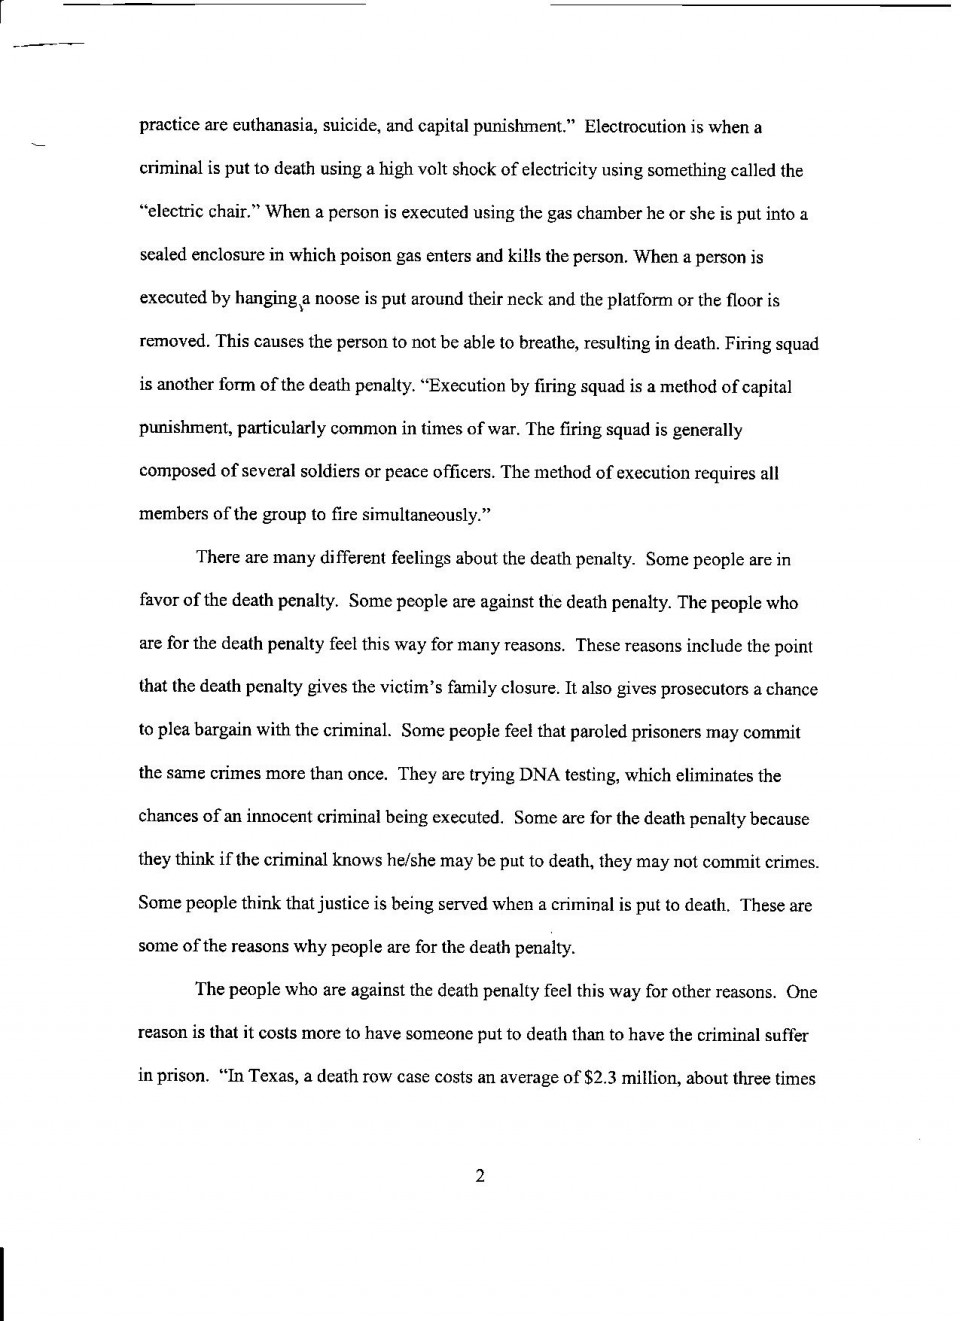 008 Essay Example Death Penalty Pg Best Rogerian Argument Sentence Abortion Style Topics 960